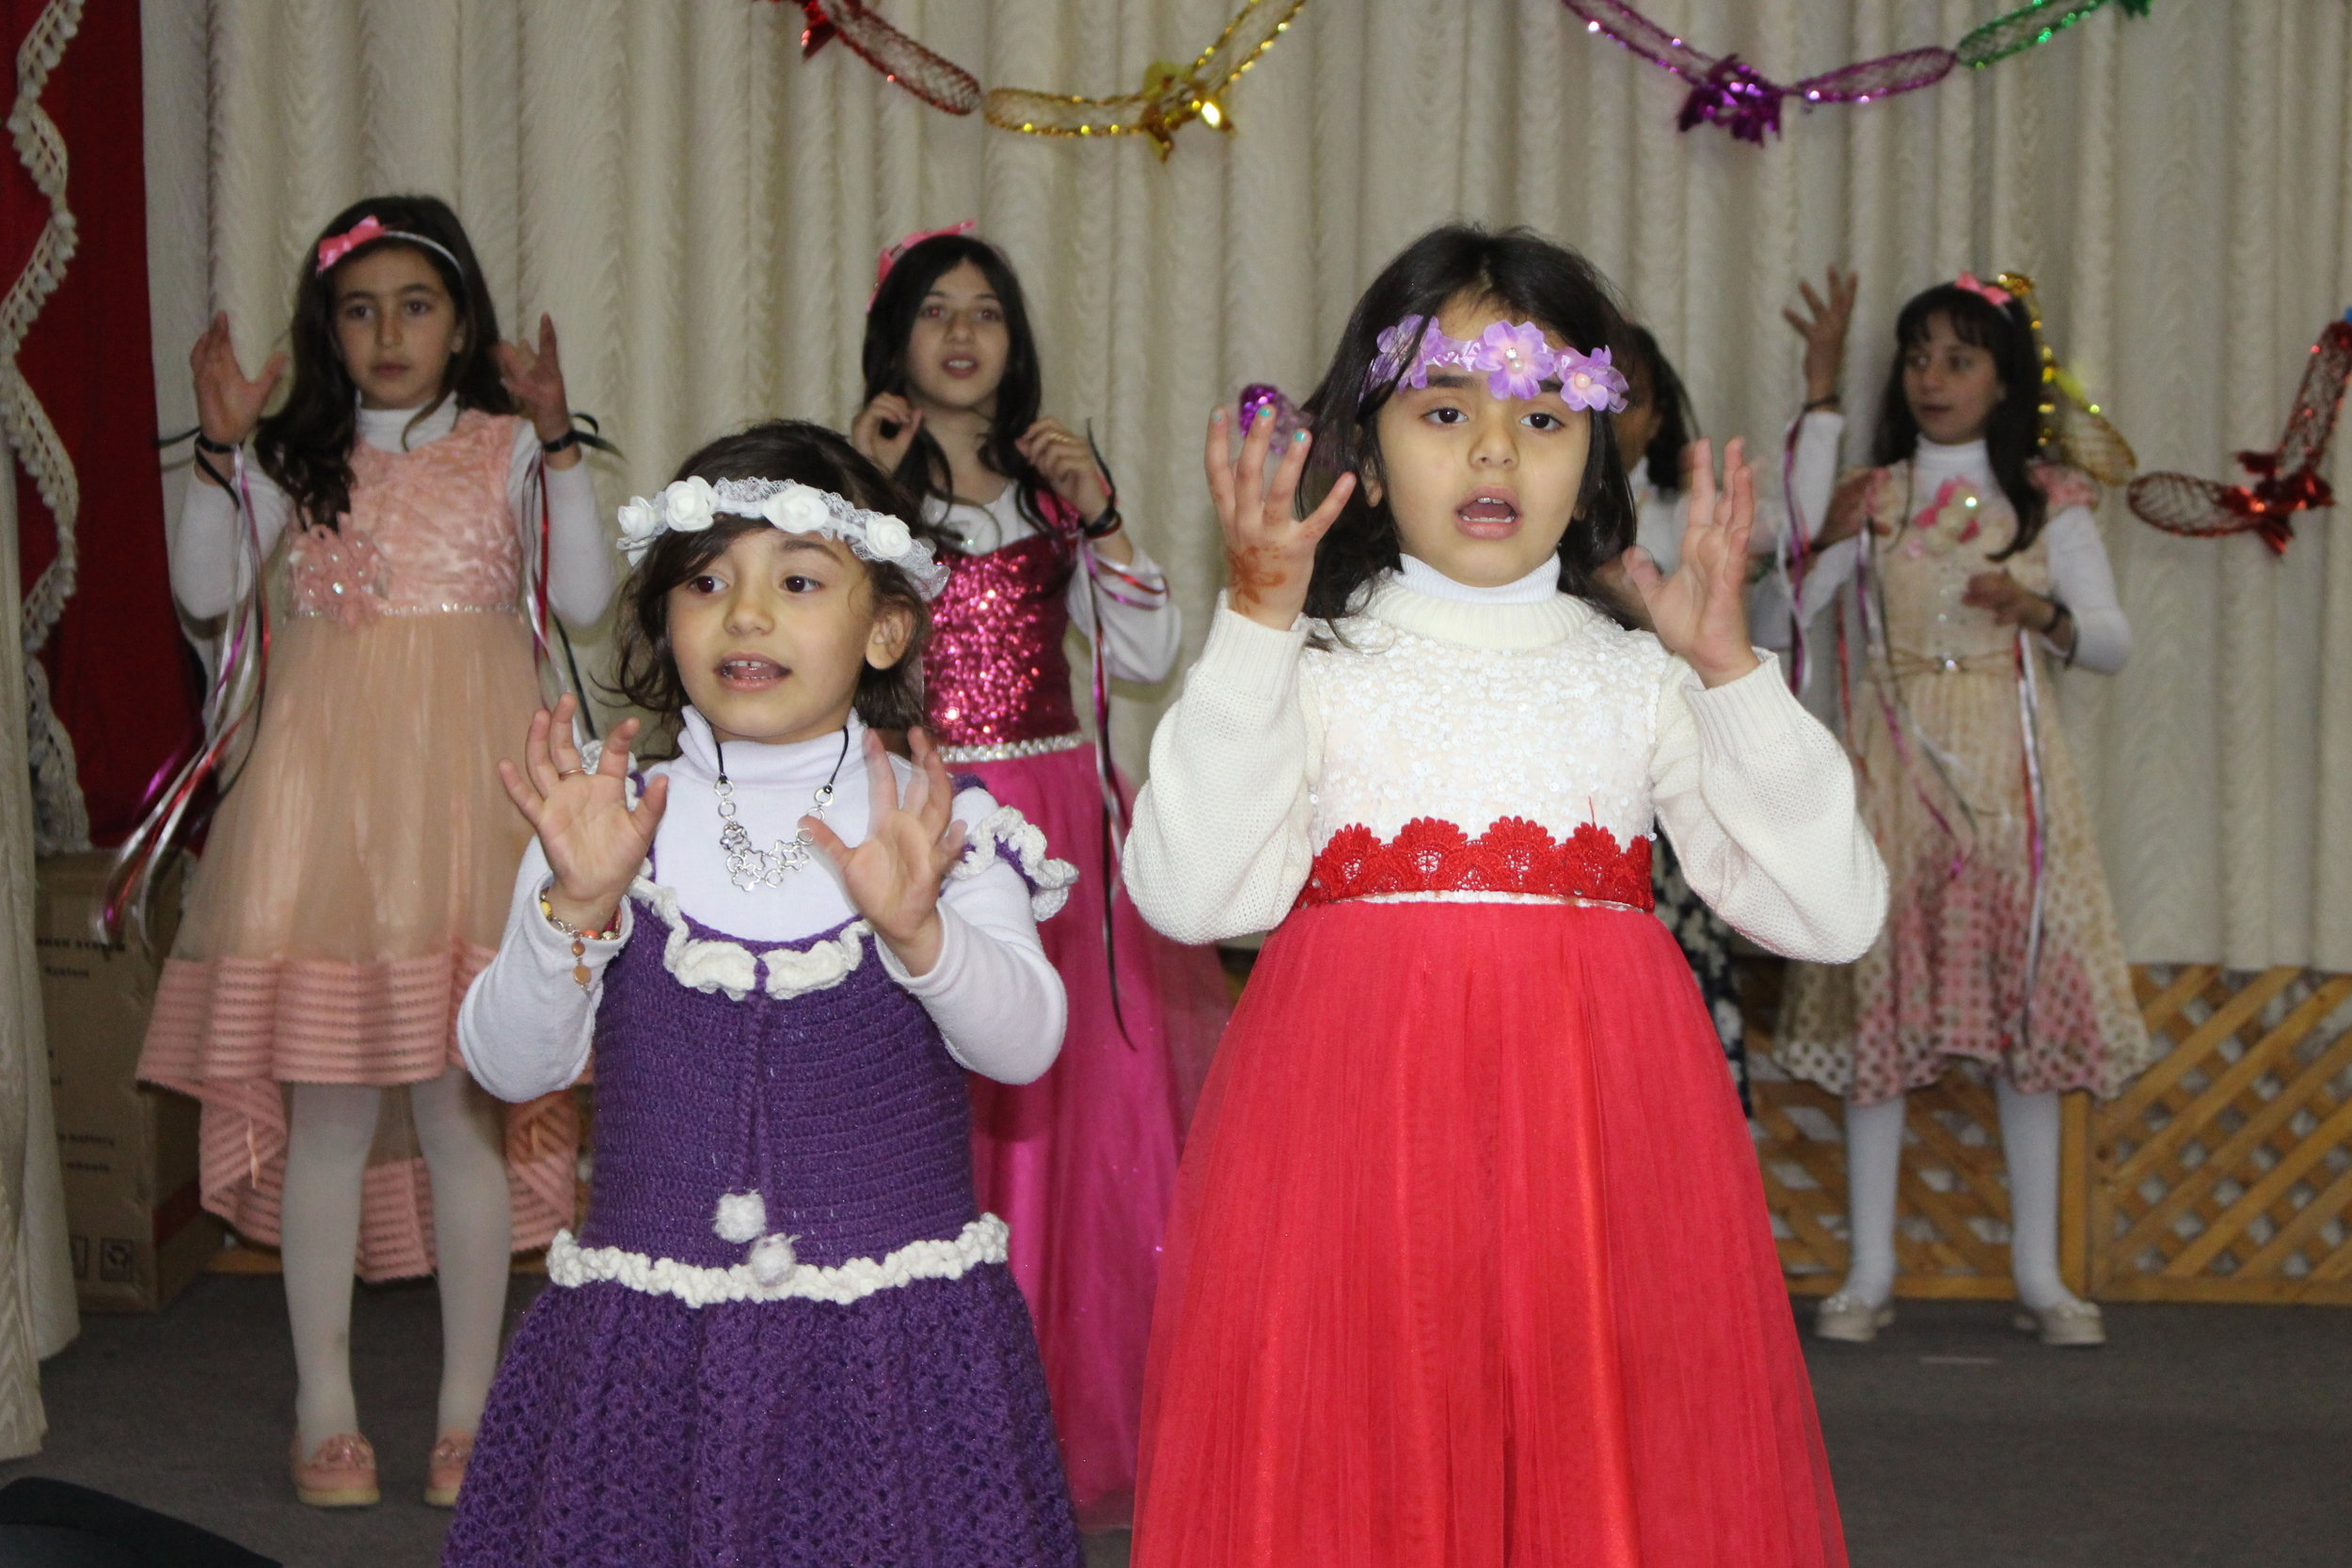 MECI-TSF 10.02.2019 Girls performing for the  Gradutation Ceremony.JPG